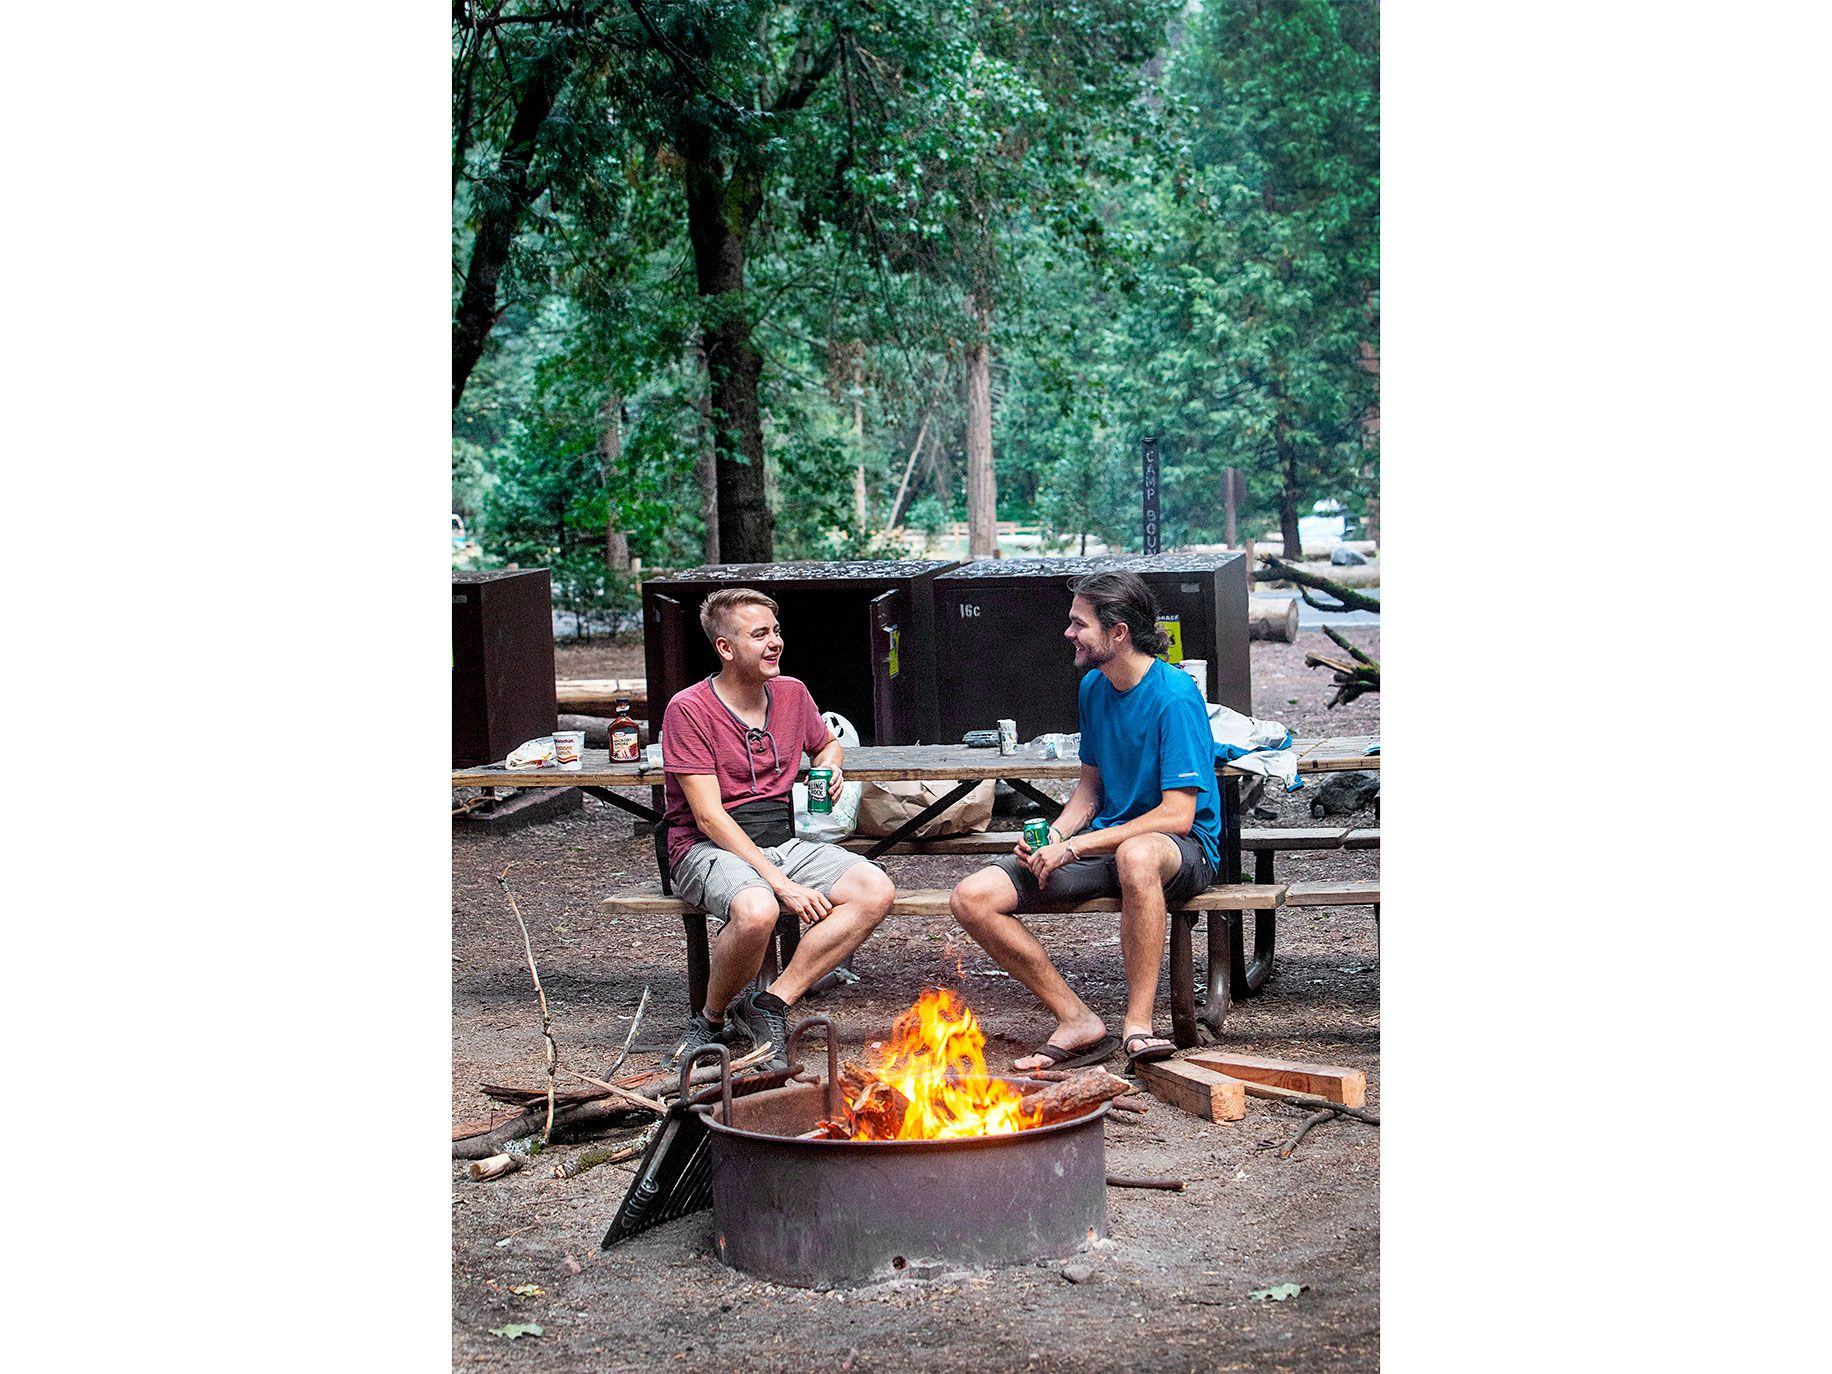 Carl Sigwart (left) and Martin Wildauer, visiting from Austria, relax at Camp 4 in July 2019.